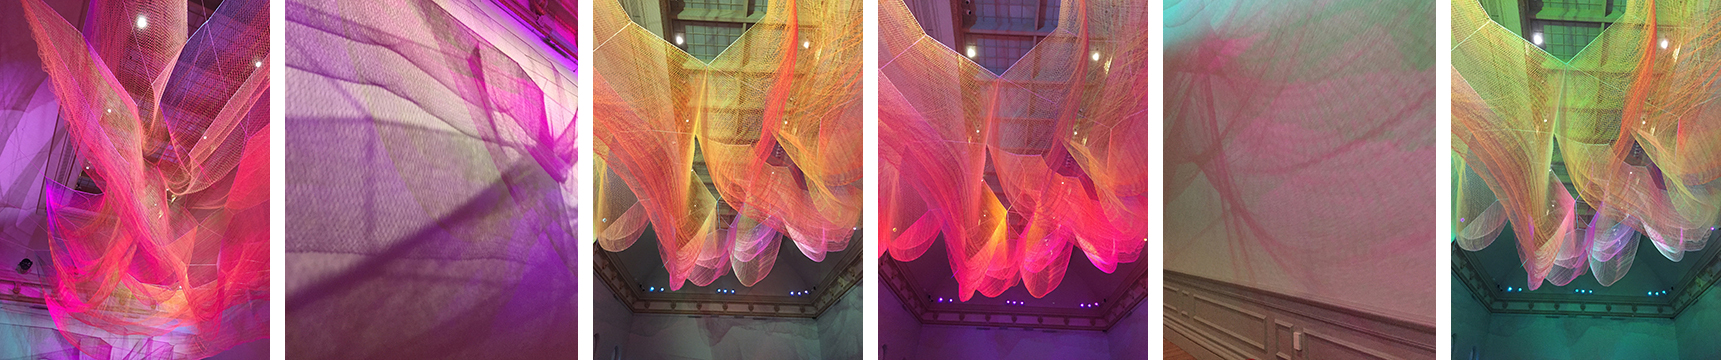 "Janet Echelman's Suspended Woven sculpture, ""1.8"" is in a gallery 100 feet long. It was inspired by the Tsunami in Japan in 2011. changing lights, and the shadows cast on the gallery walls, make it completely mesmerizing."